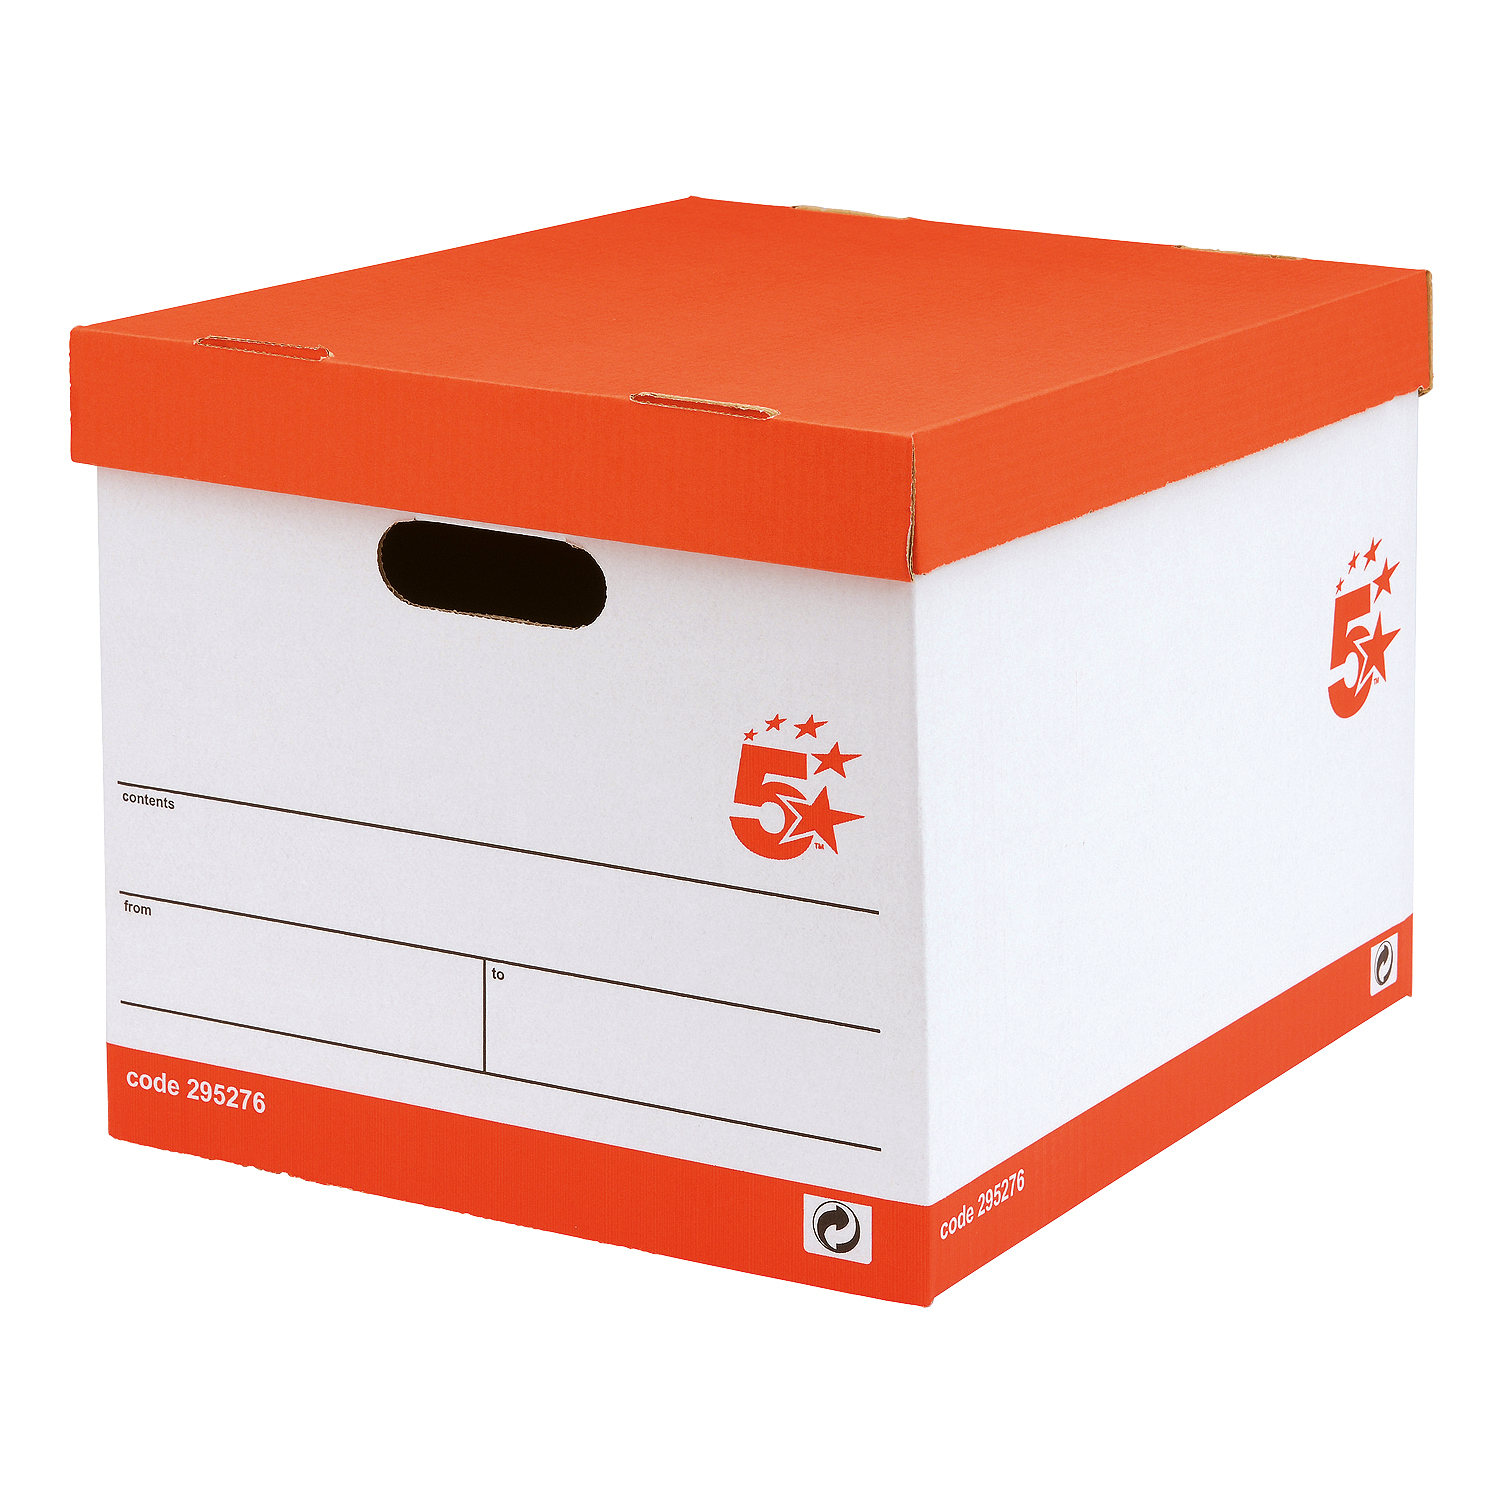 Storage Boxes 5 Star Office FSC Storage Box with Lid Self-assembly W321xD392xH291mm Red & White Pack 10